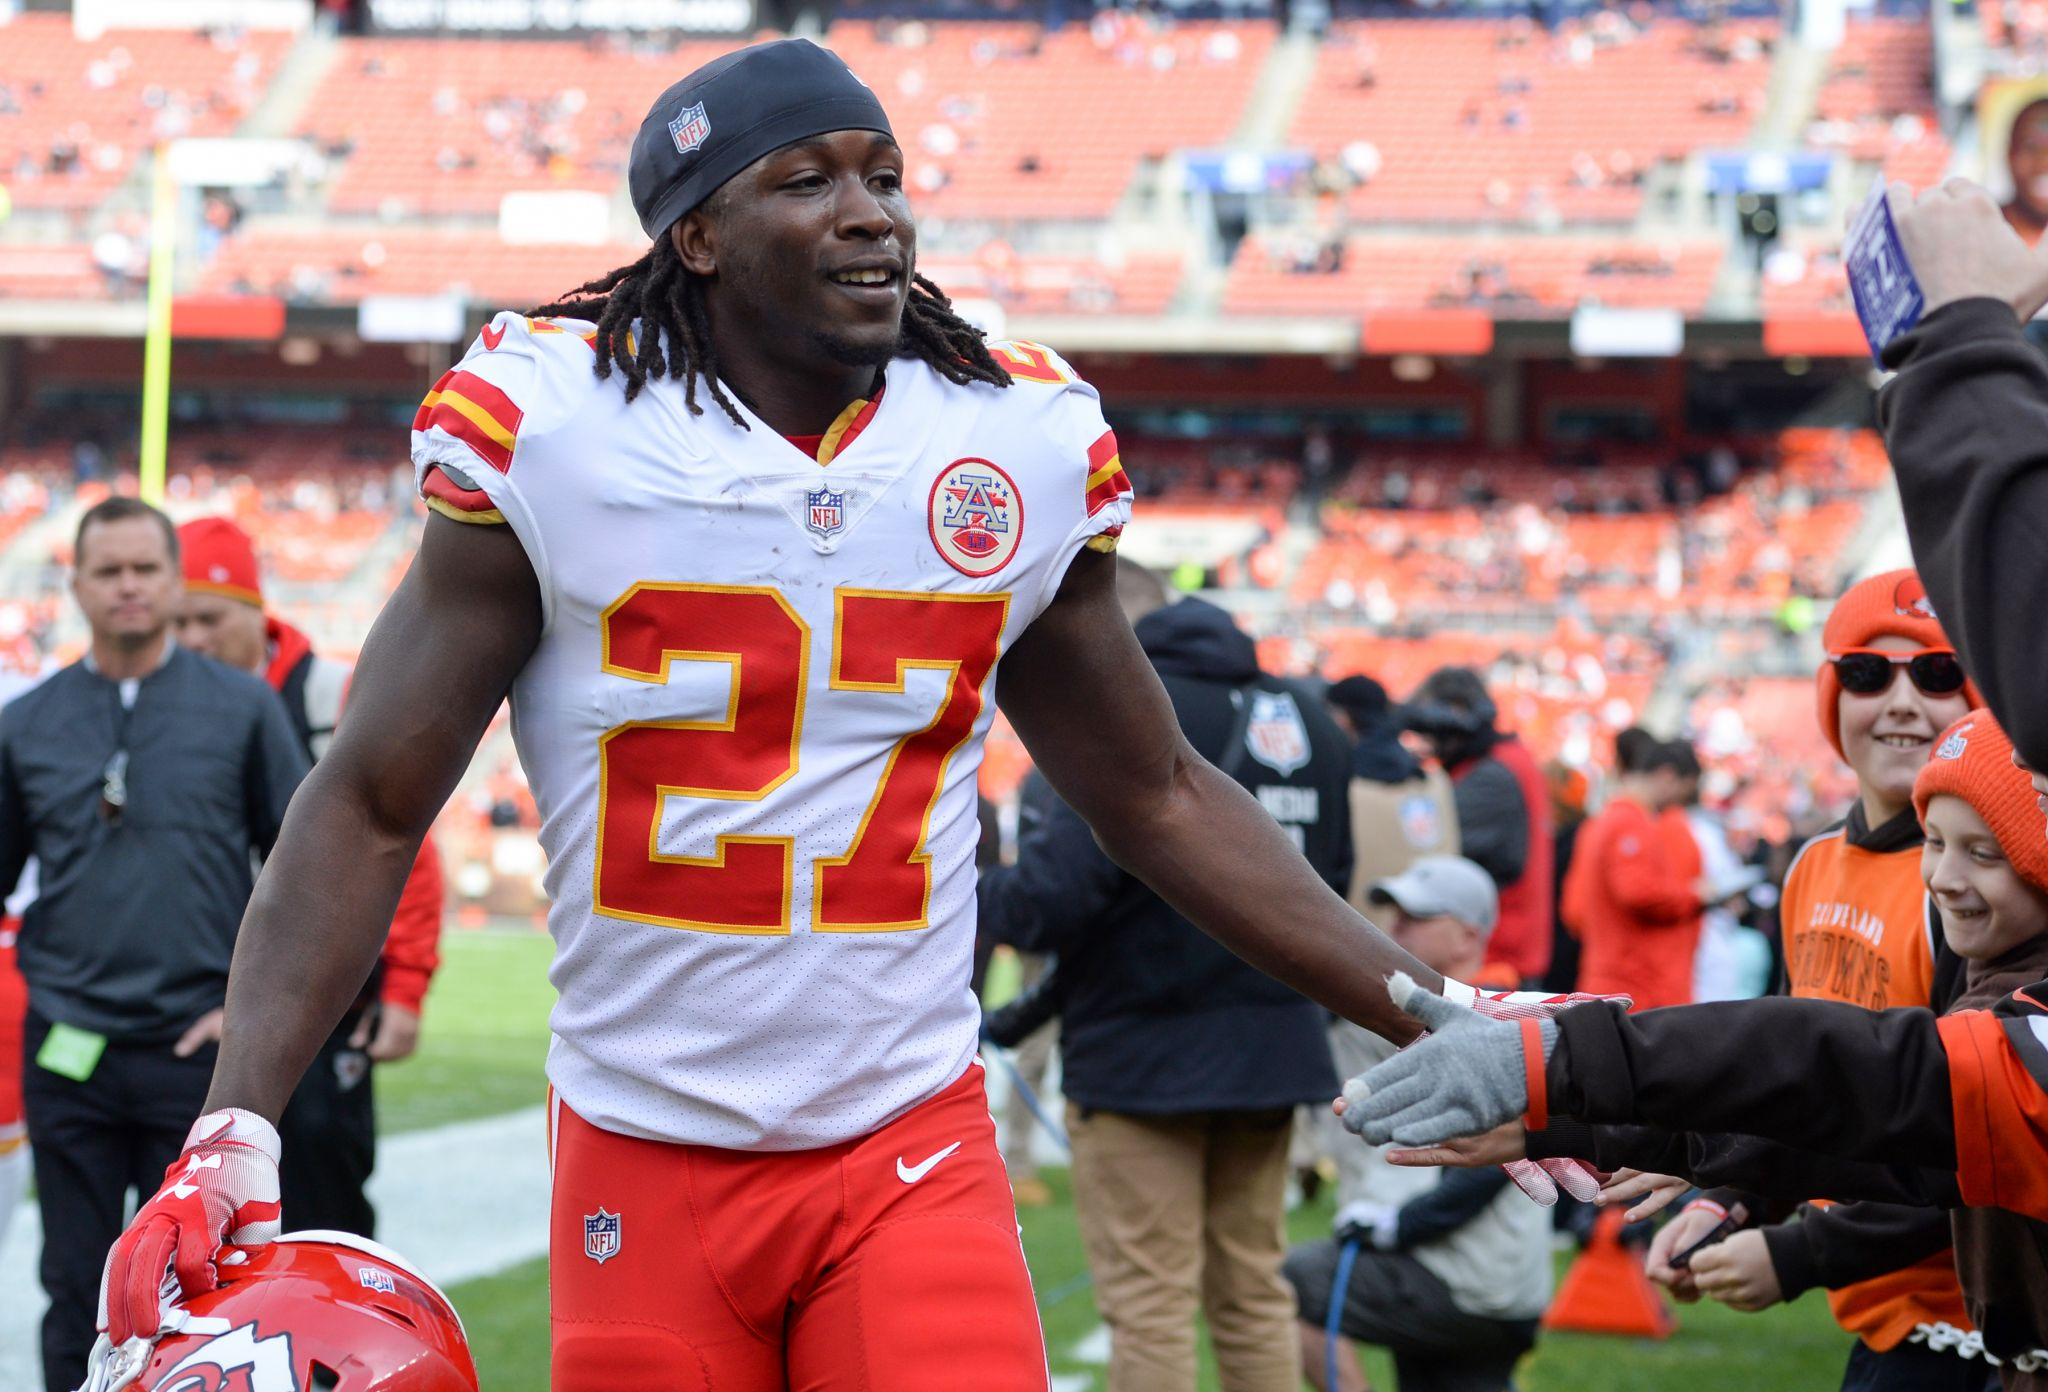 Creech: We can't just move on after Kareem Hunt suspension